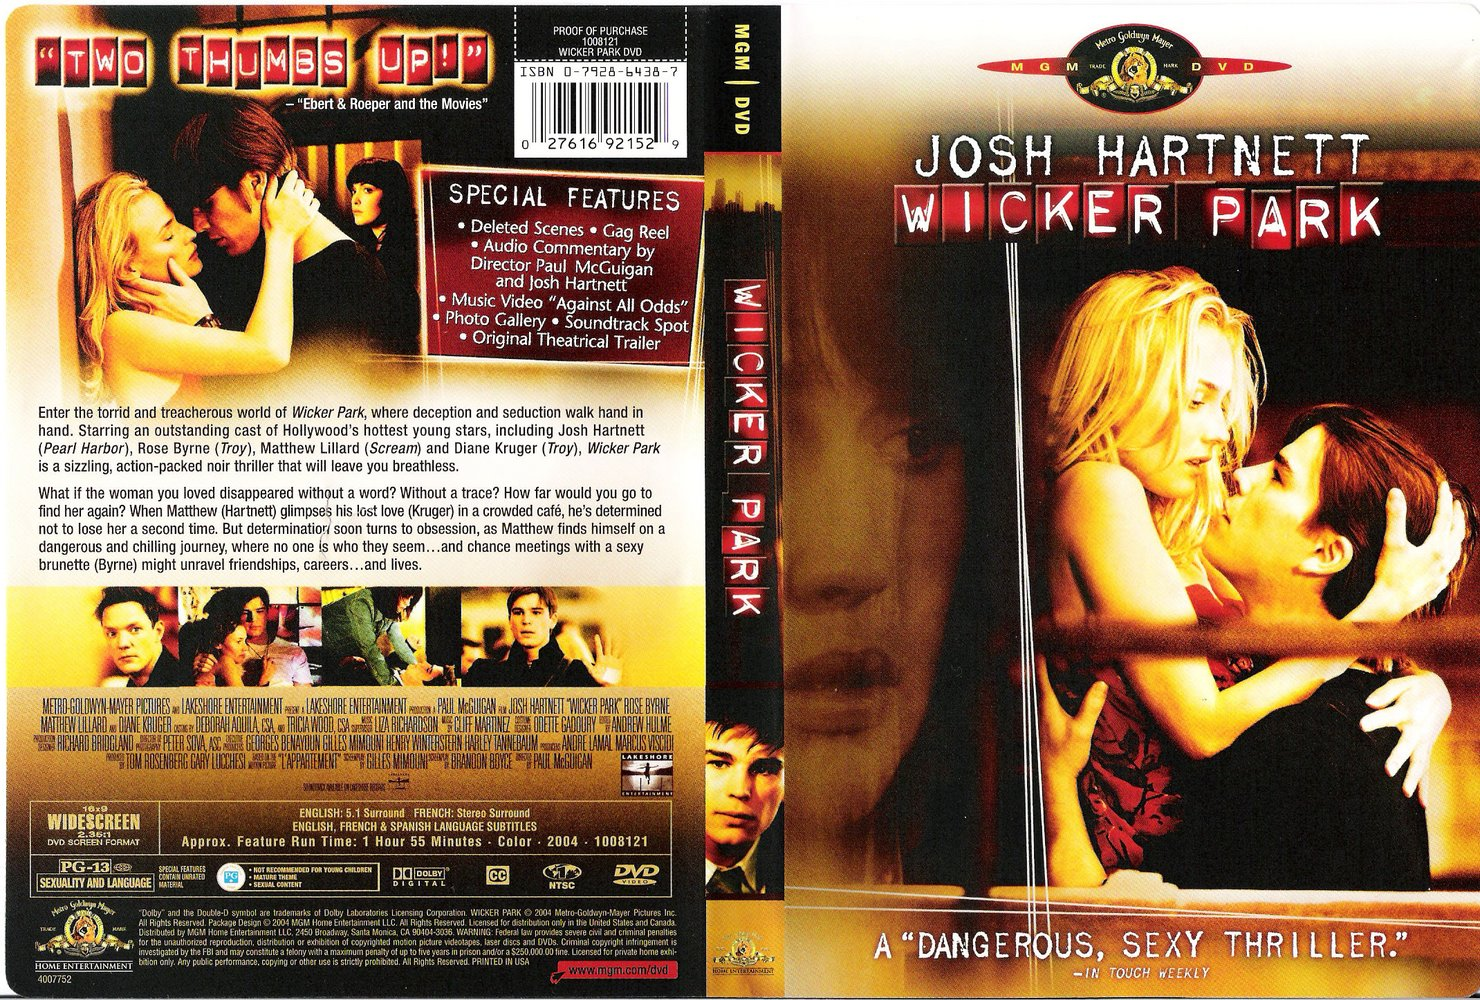 Jaquette dvd rencontre a wicker park